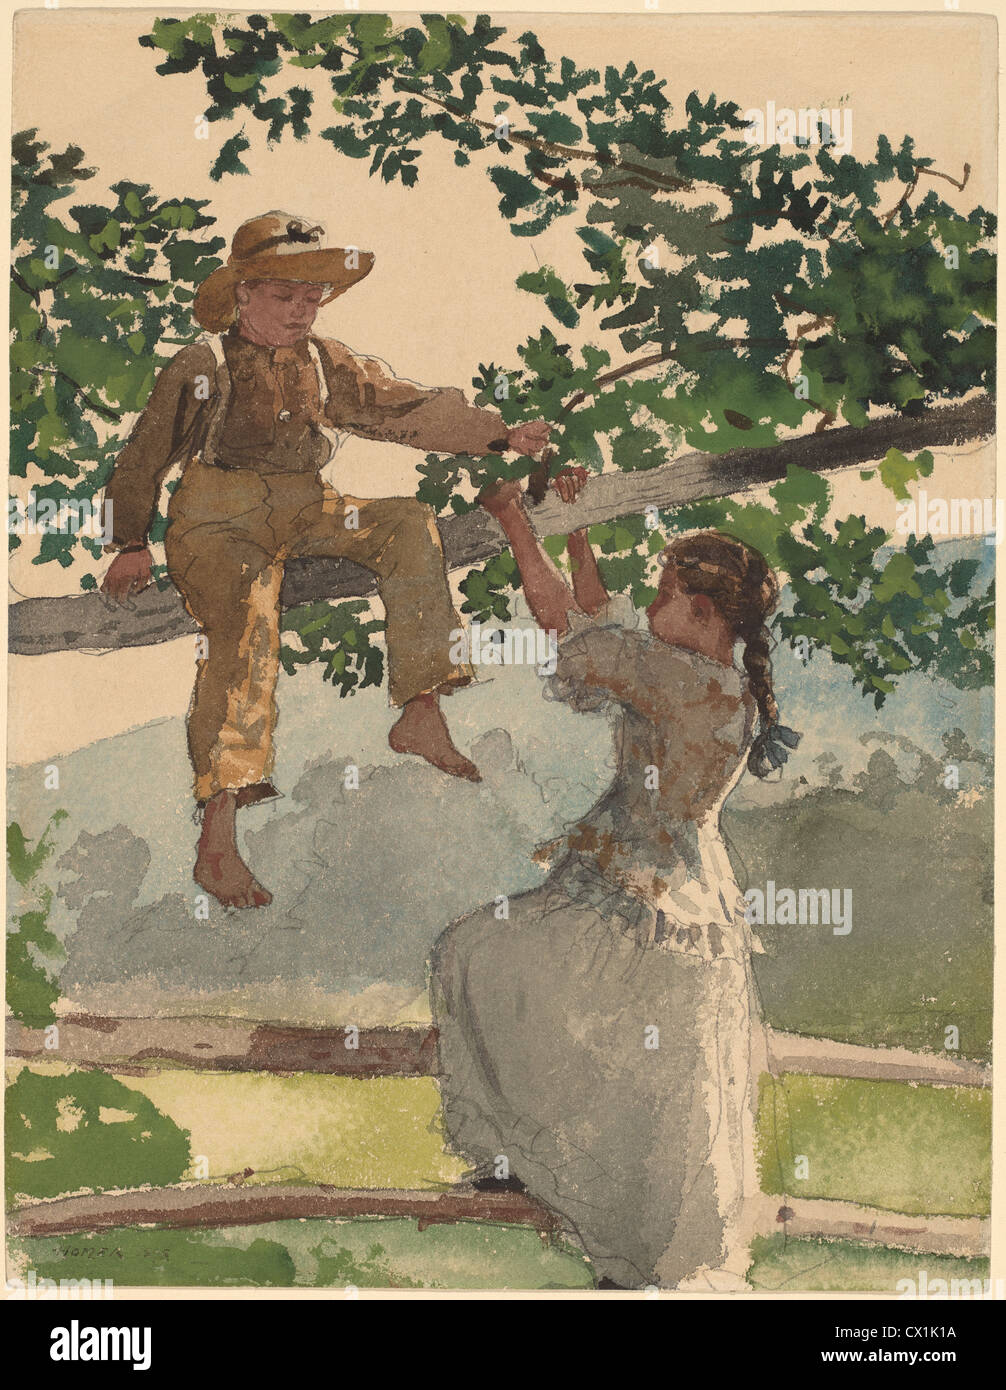 Winslow Homer, On the Fence, American, 1836 - 1910, 1878, watercolor, gouache, and graphite on wove paper - Stock Image